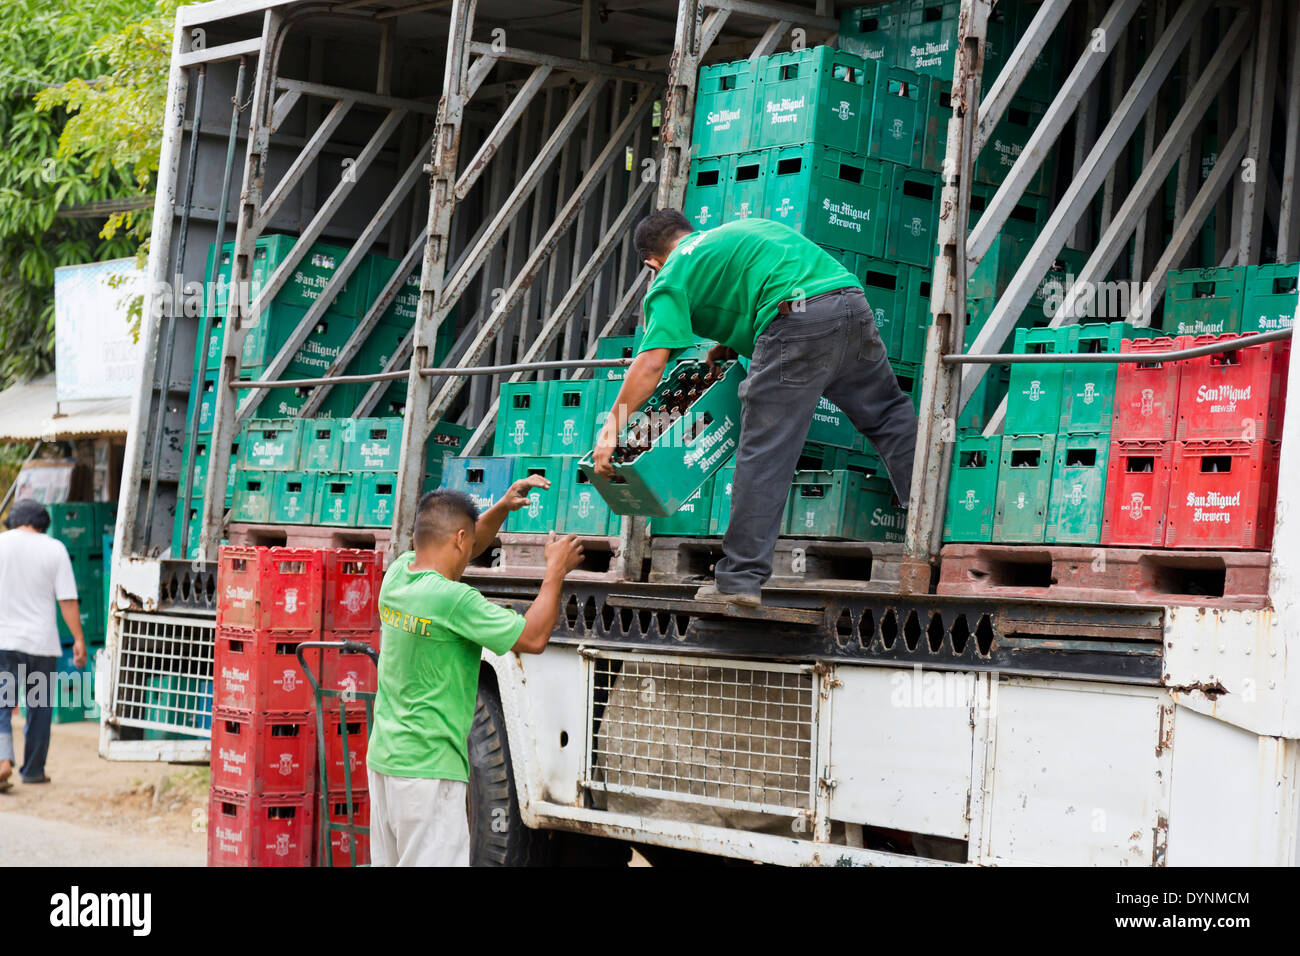 Unloading a Truck in Puerto Princesa, Palawan, Philippines - Stock Image